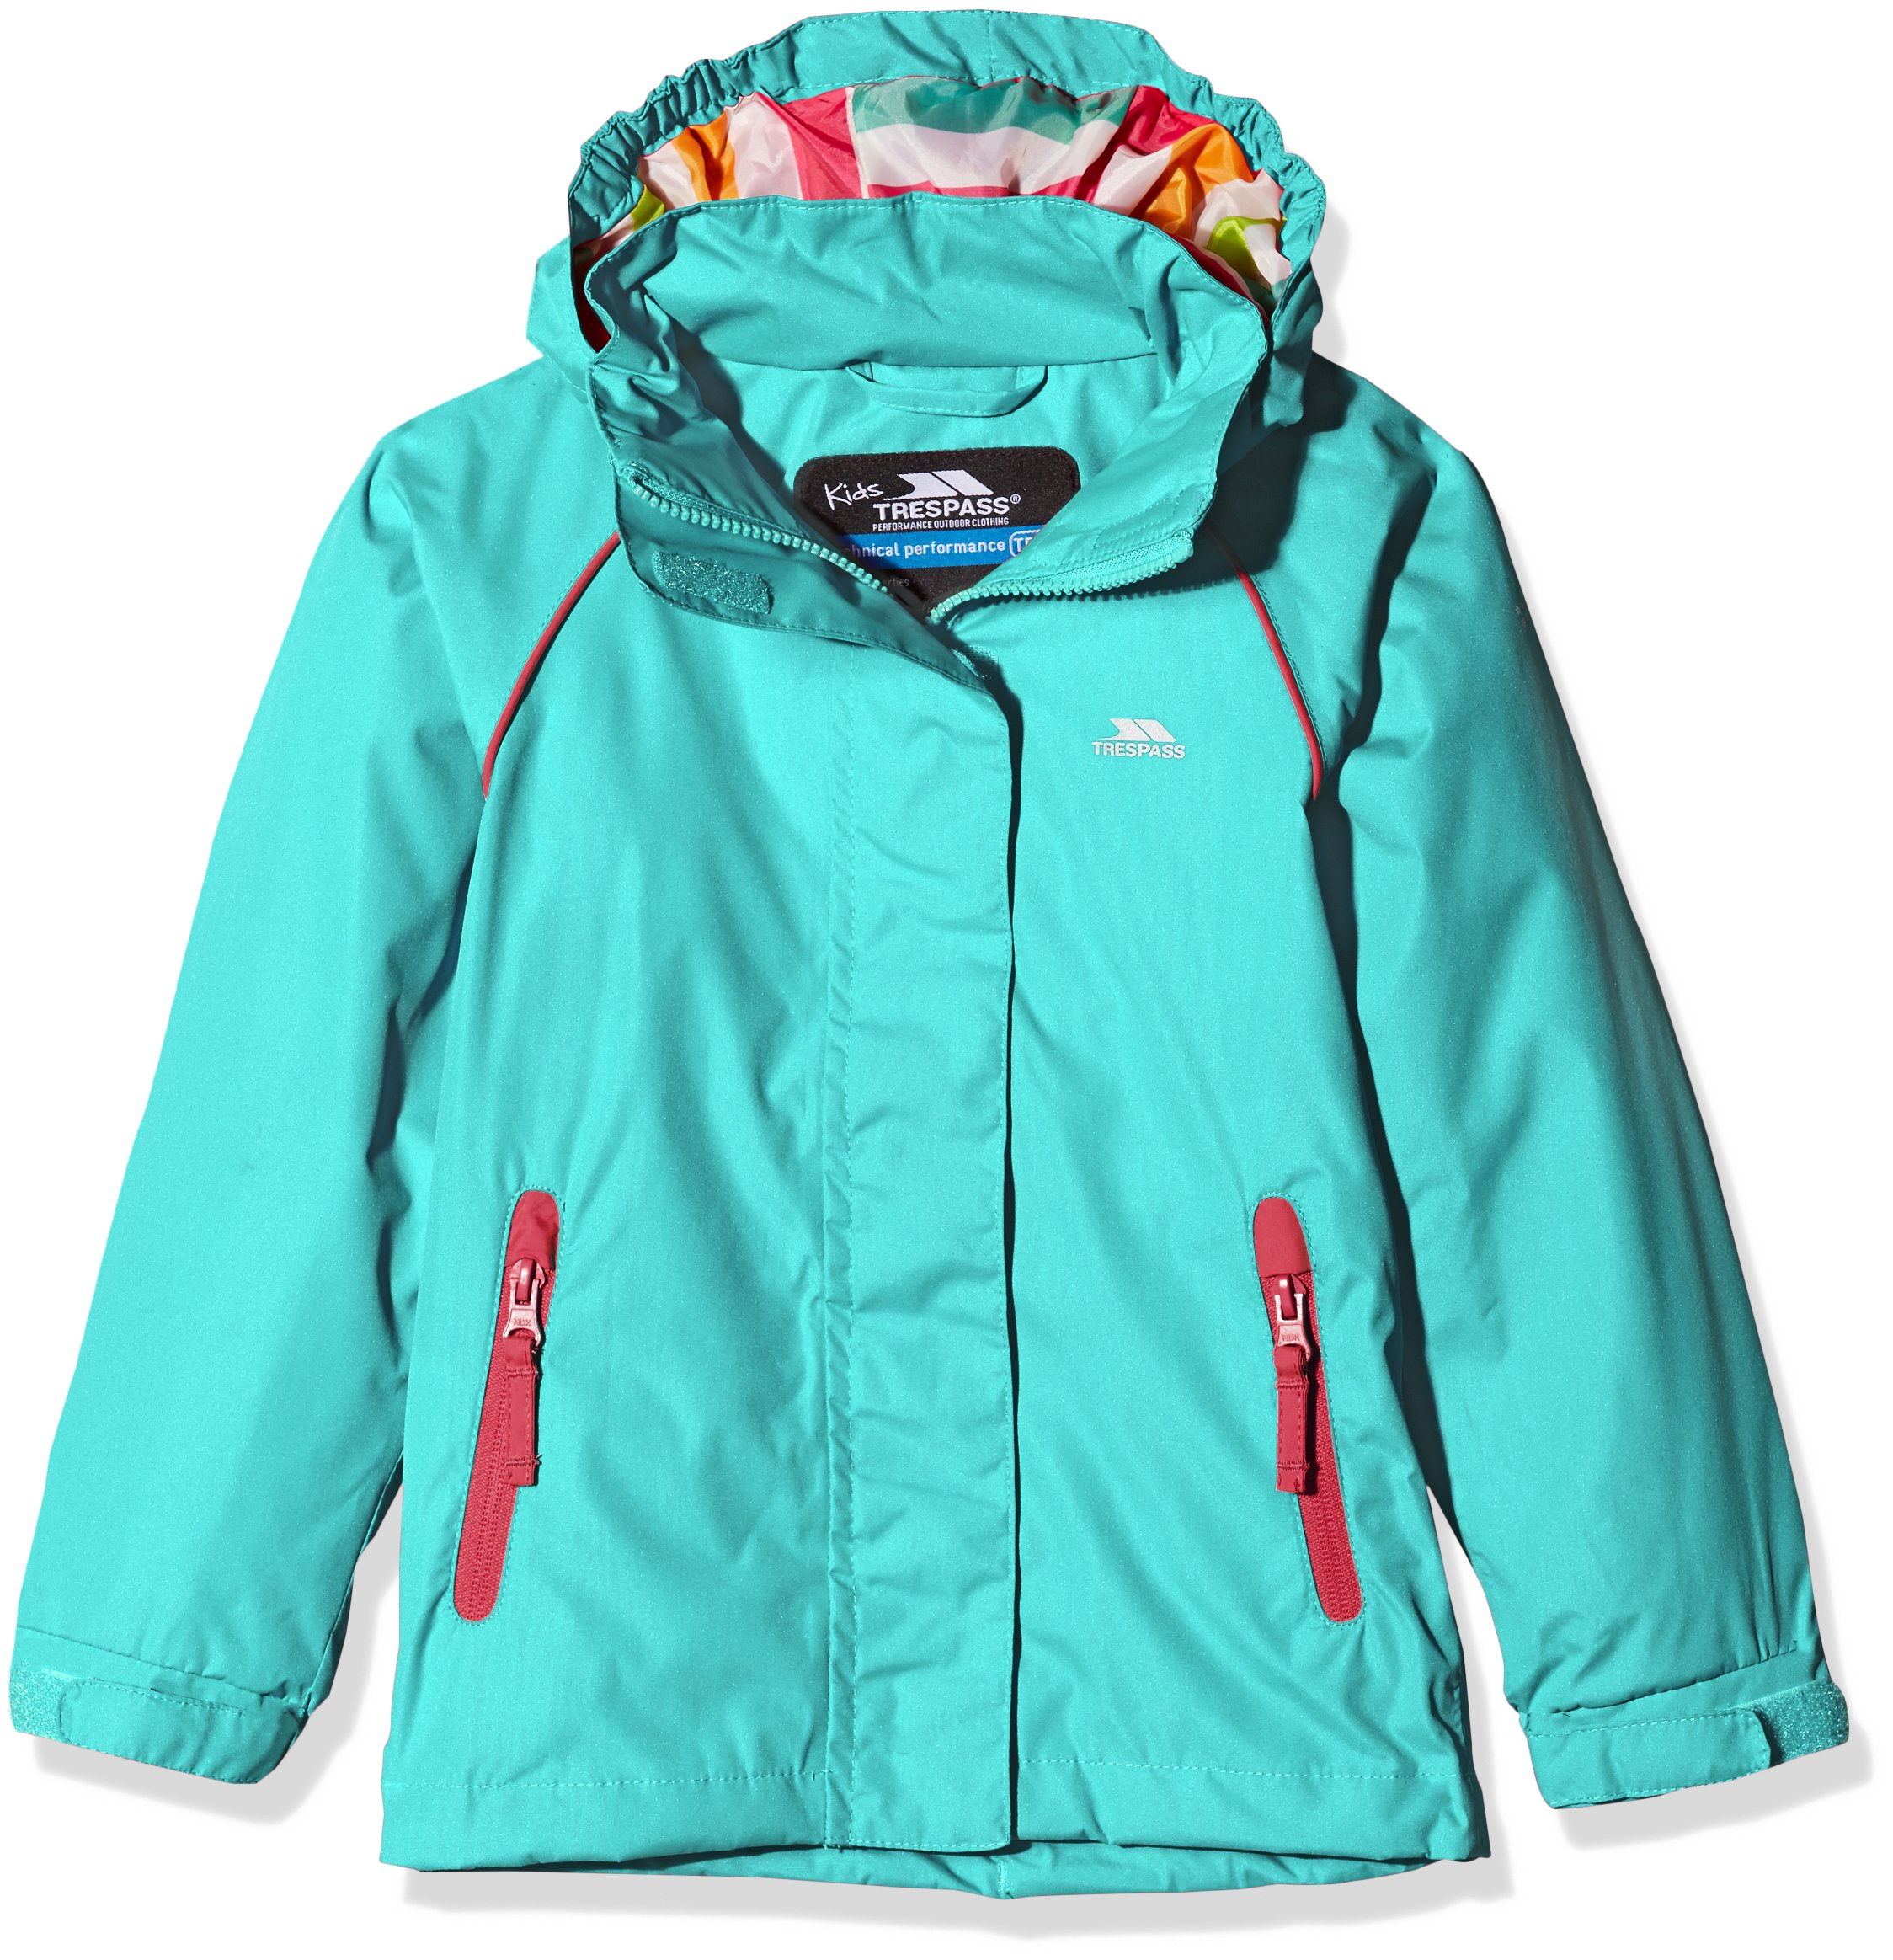 Trespass Kids' Lunaria Waterproof Rain/Outdoor Jacket